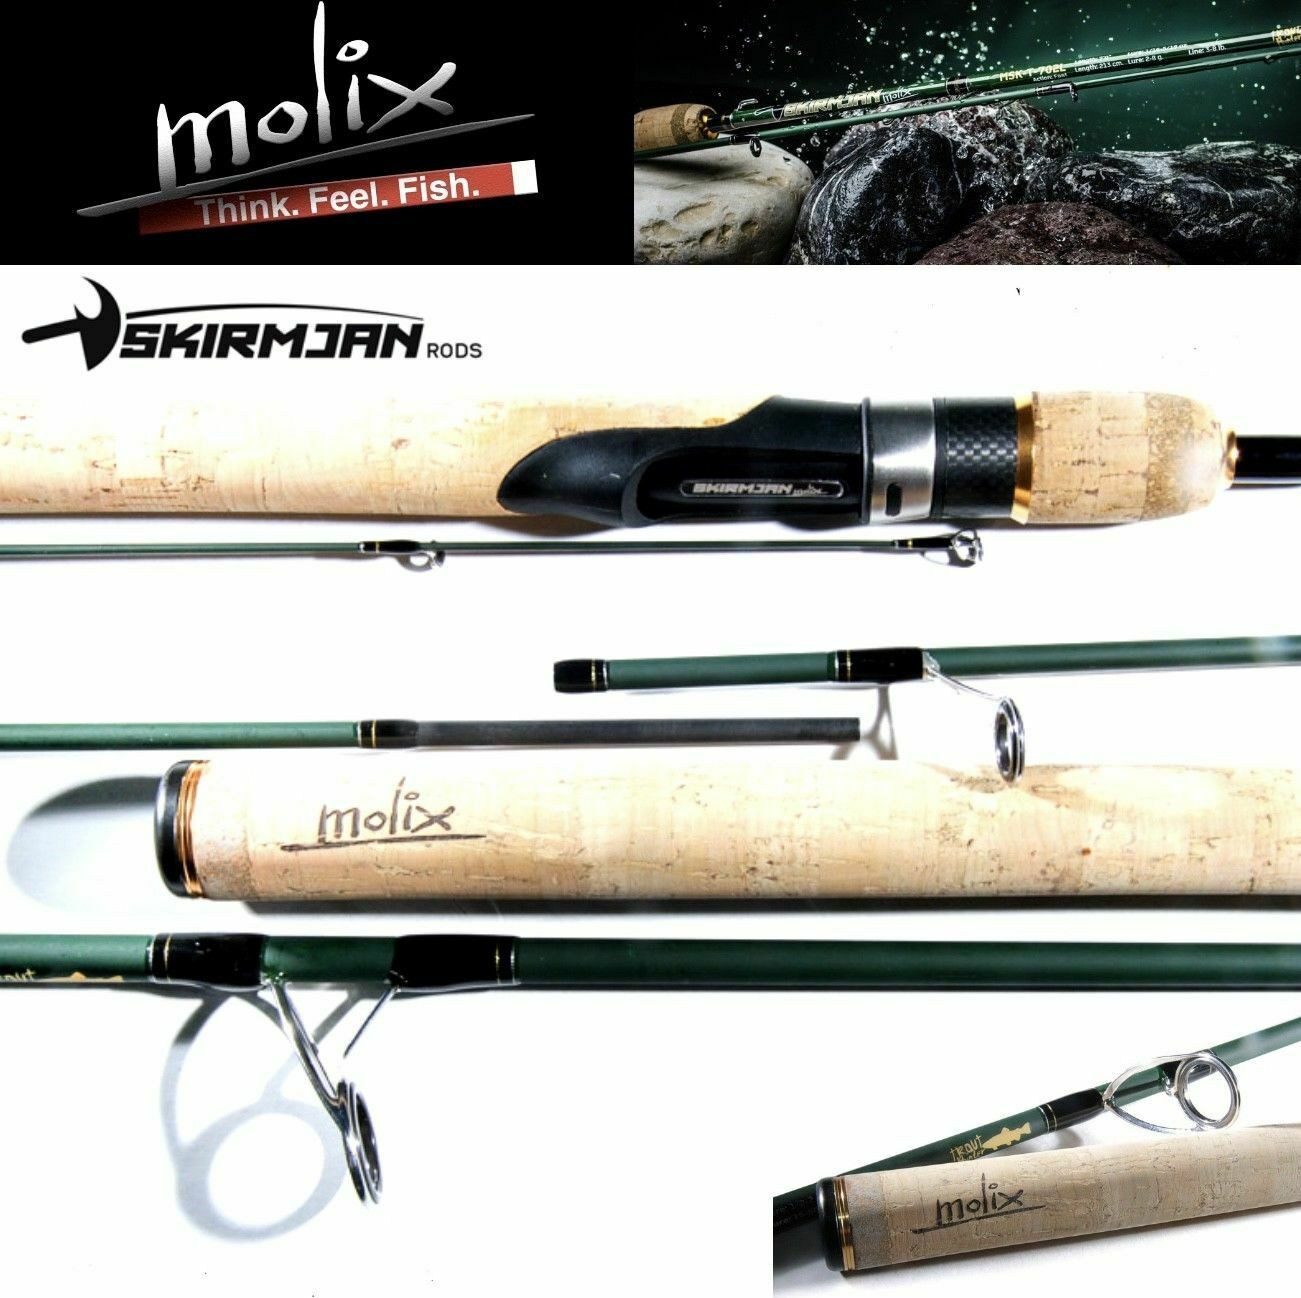 MOLIX TROUT HUNTER SPINN RODS SKIRMJAN